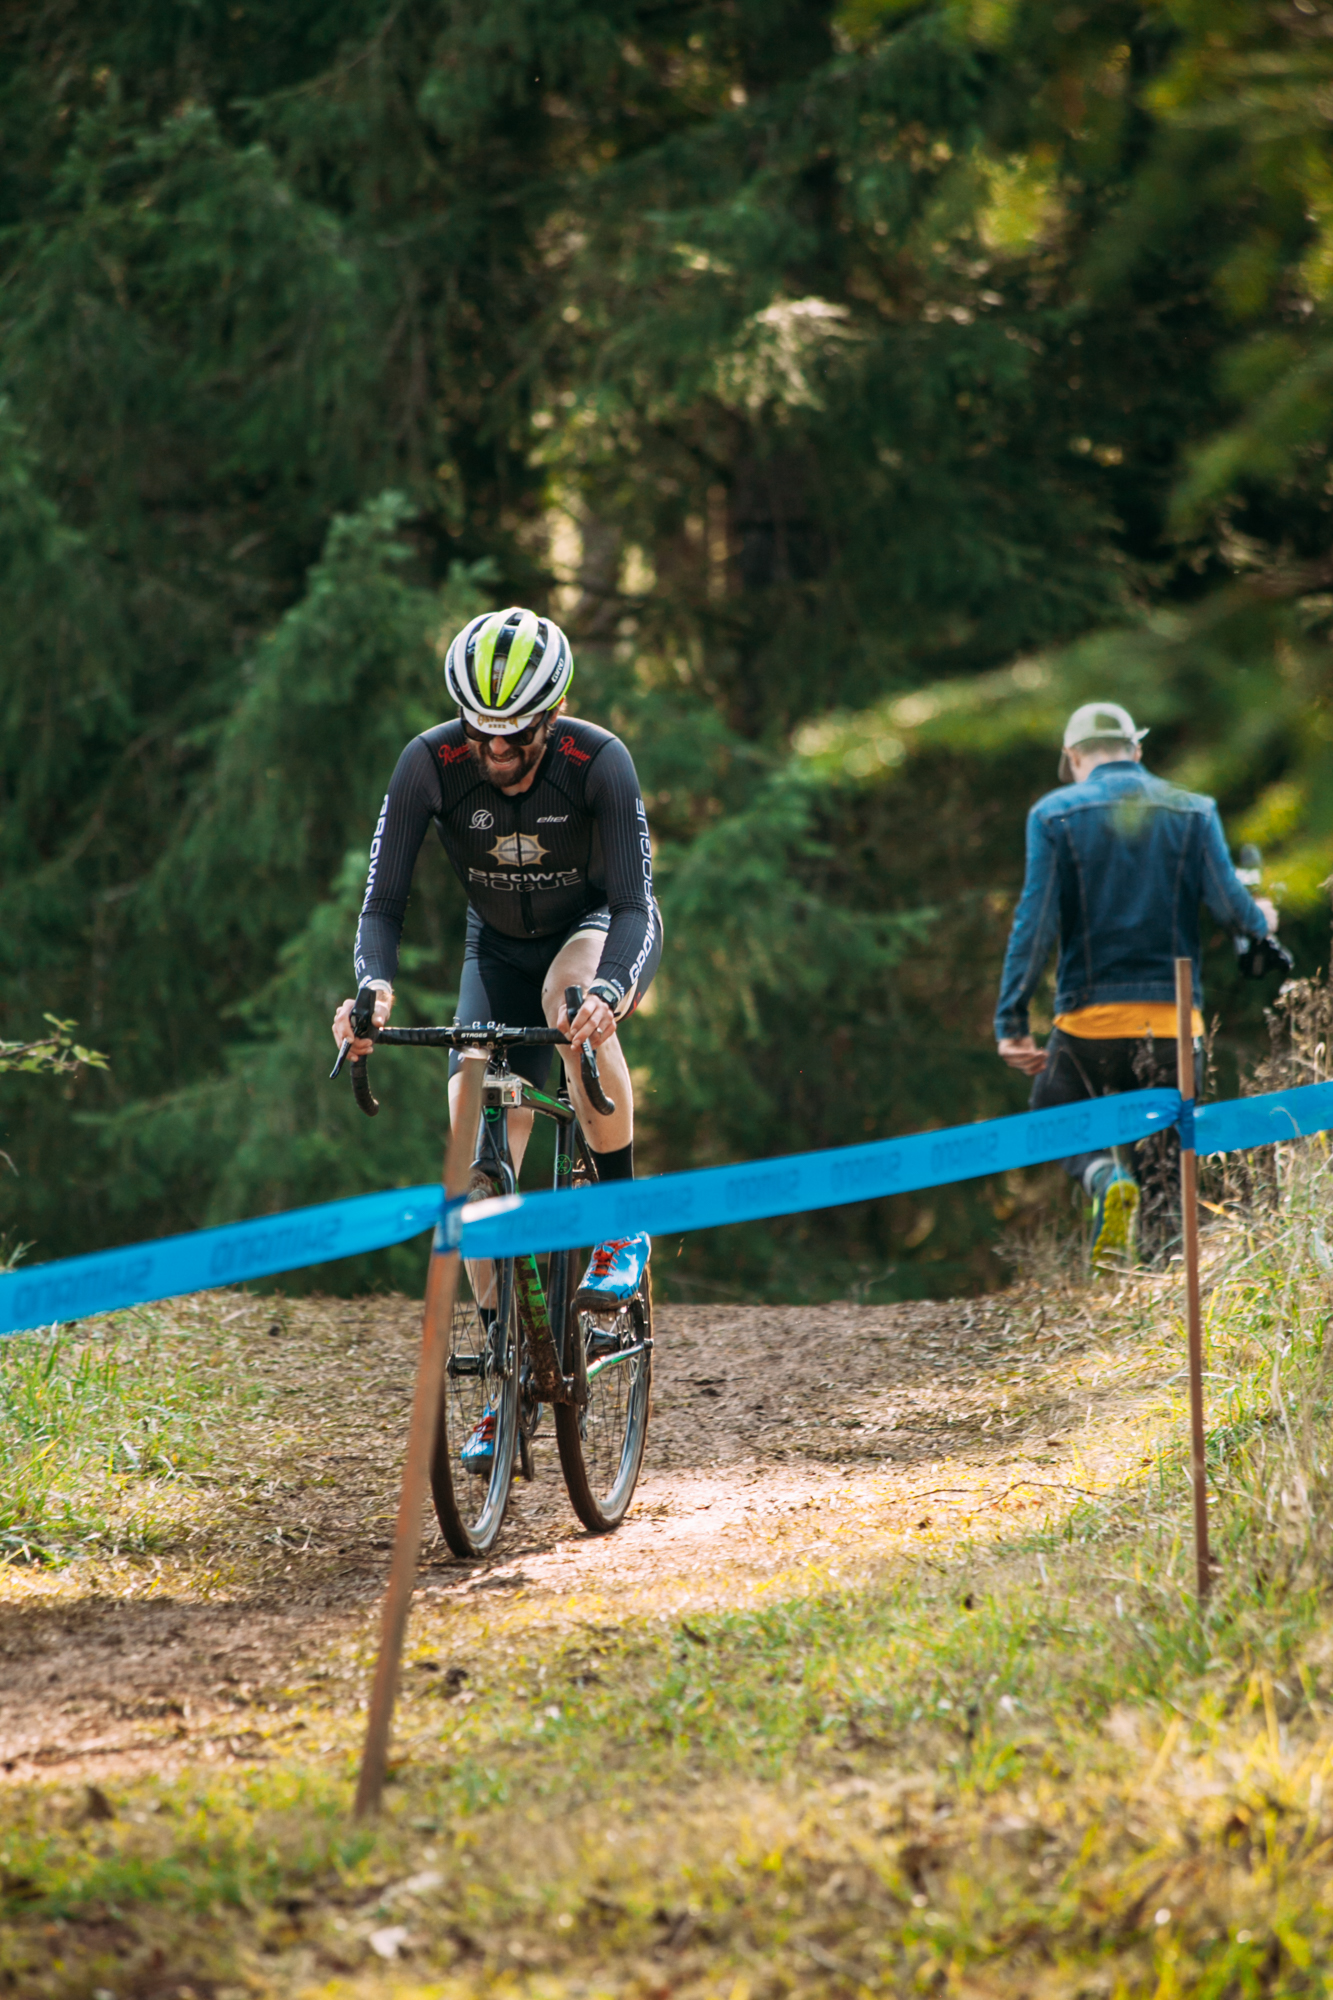 Cyclocross18_CCCX_RainierHS-130-mettlecycling.jpg